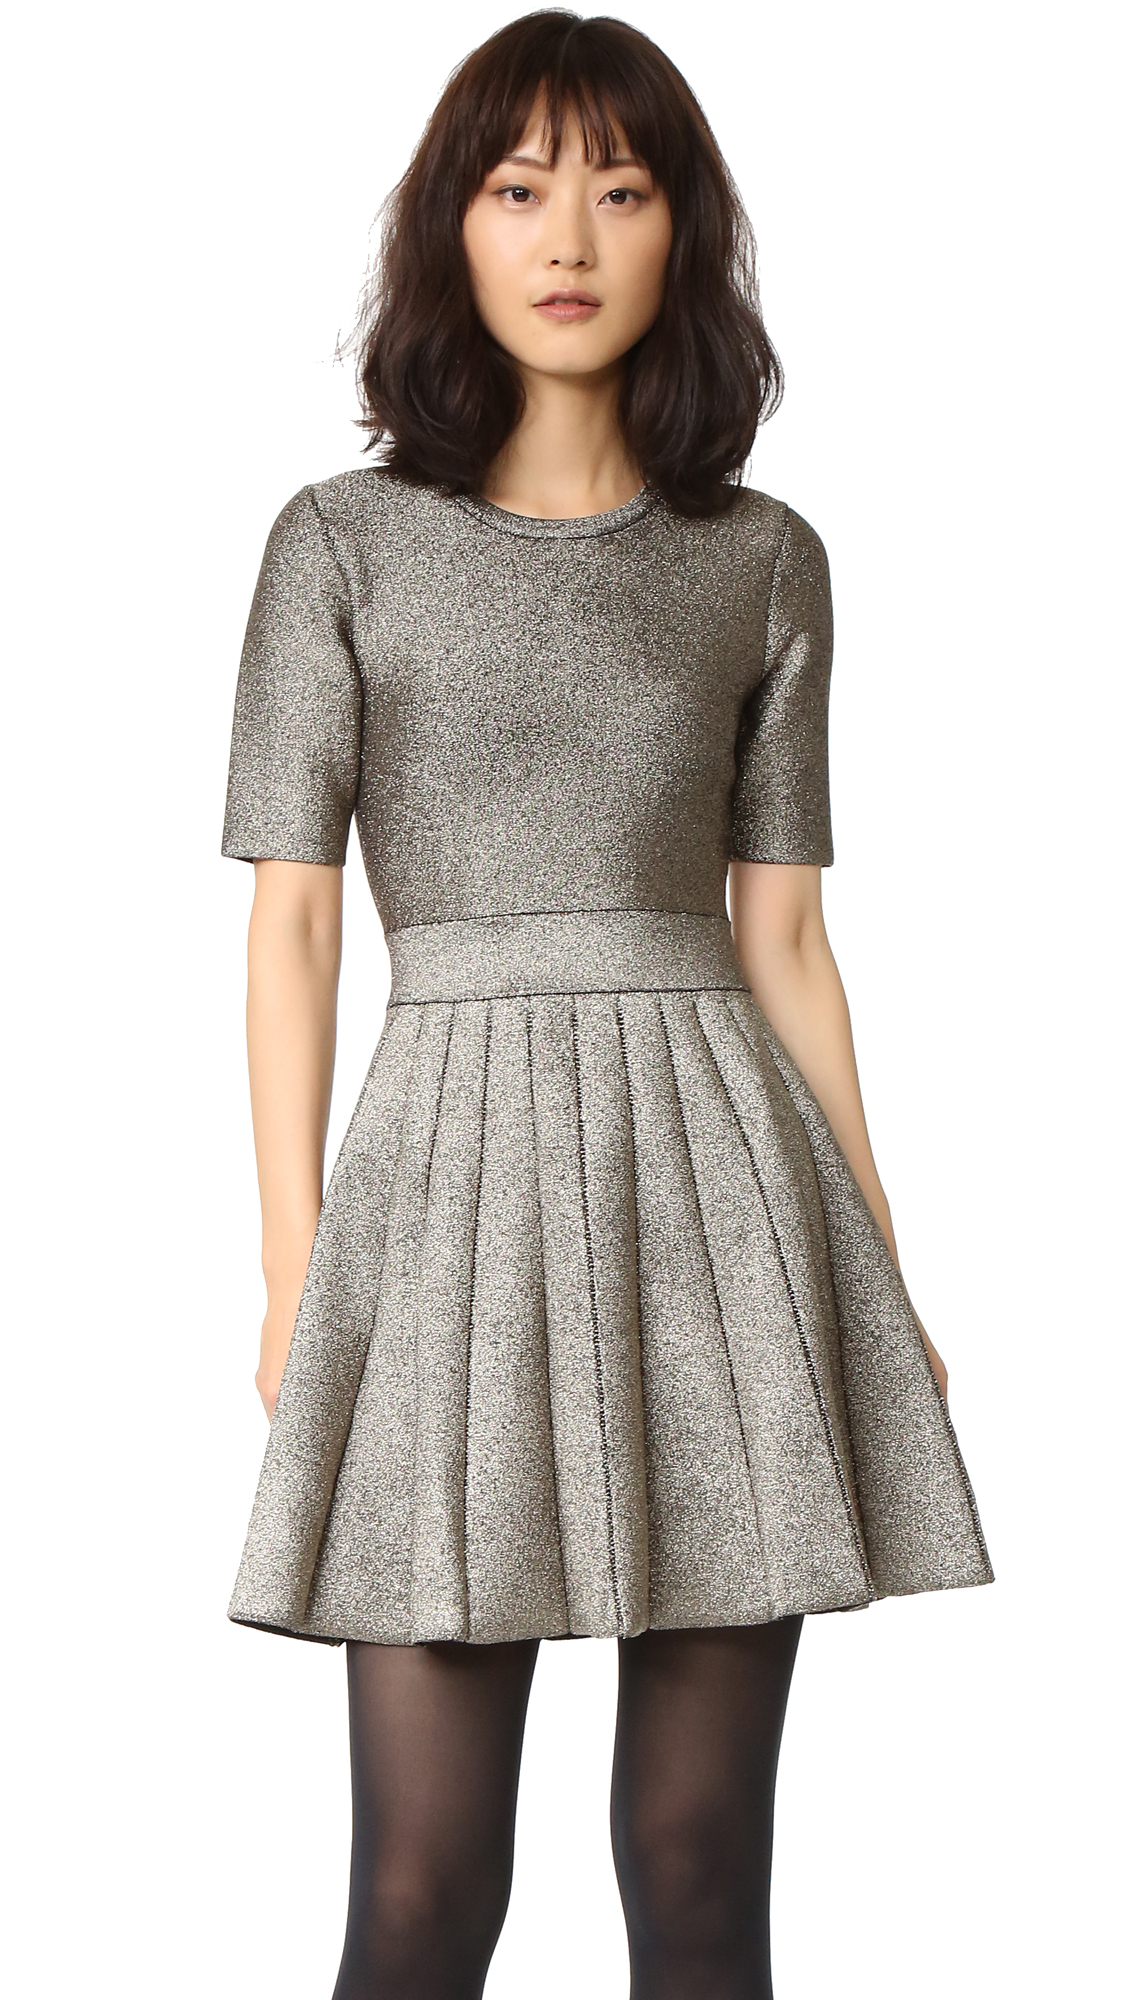 An A.L.C. fit and flare dress with a metallic sheen, detailed with lattice trim at the skirt. Half sleeves. Unlined. Fabric: Double knit. 54% rayon/33% nylon/11% metallic/2% elastane. Dry clean. Imported, China. Measurements Length: 33.75in / 86